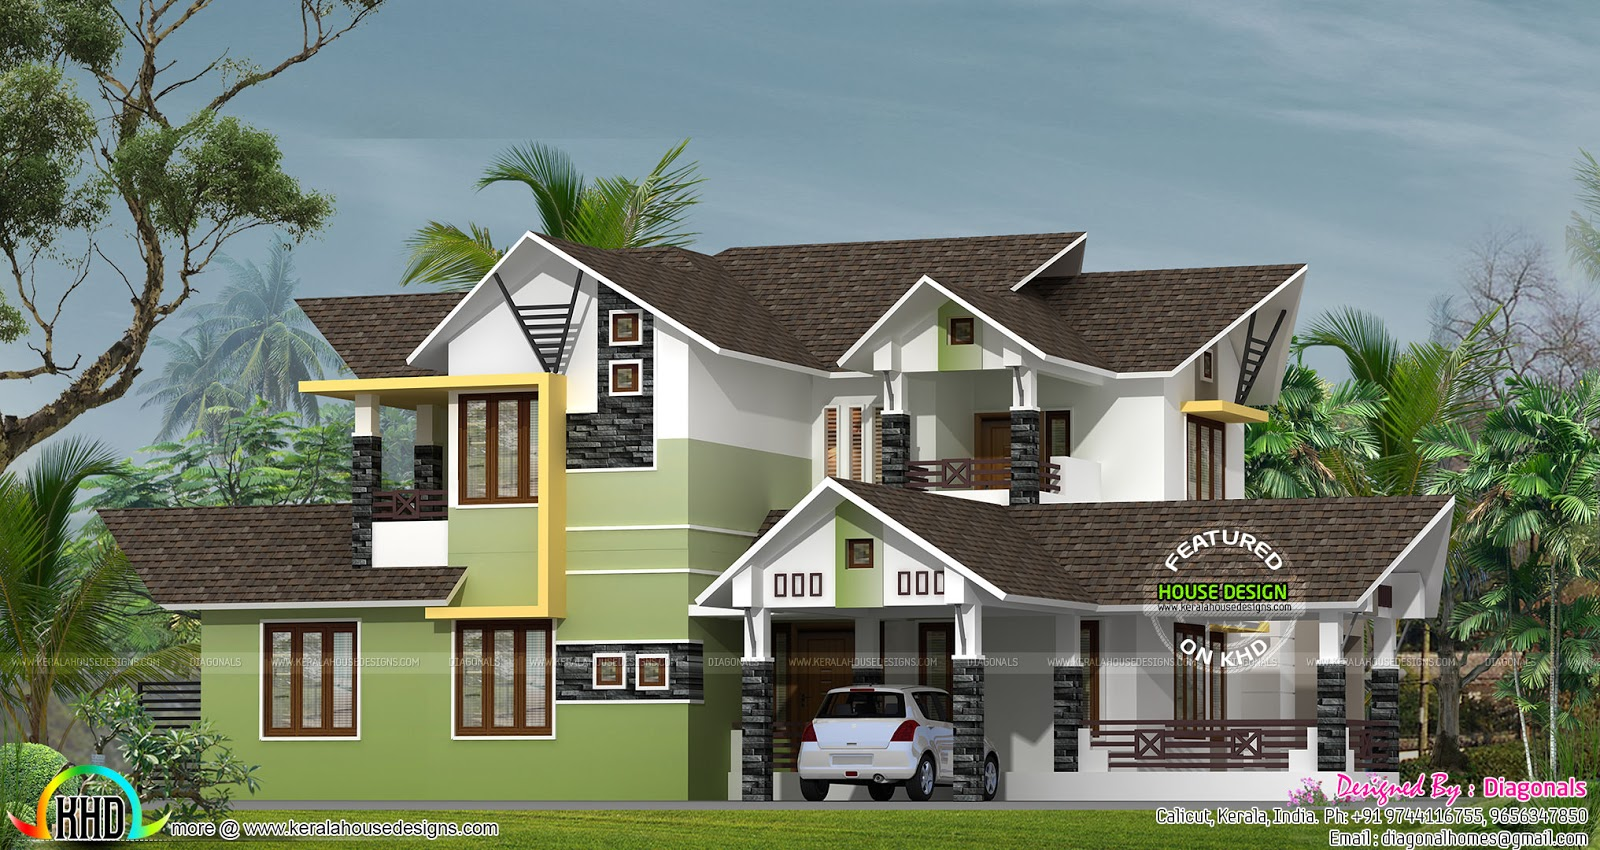 250 square meter modern sloping roof kerala home design and floor plans - Houses atticsquare meters ...